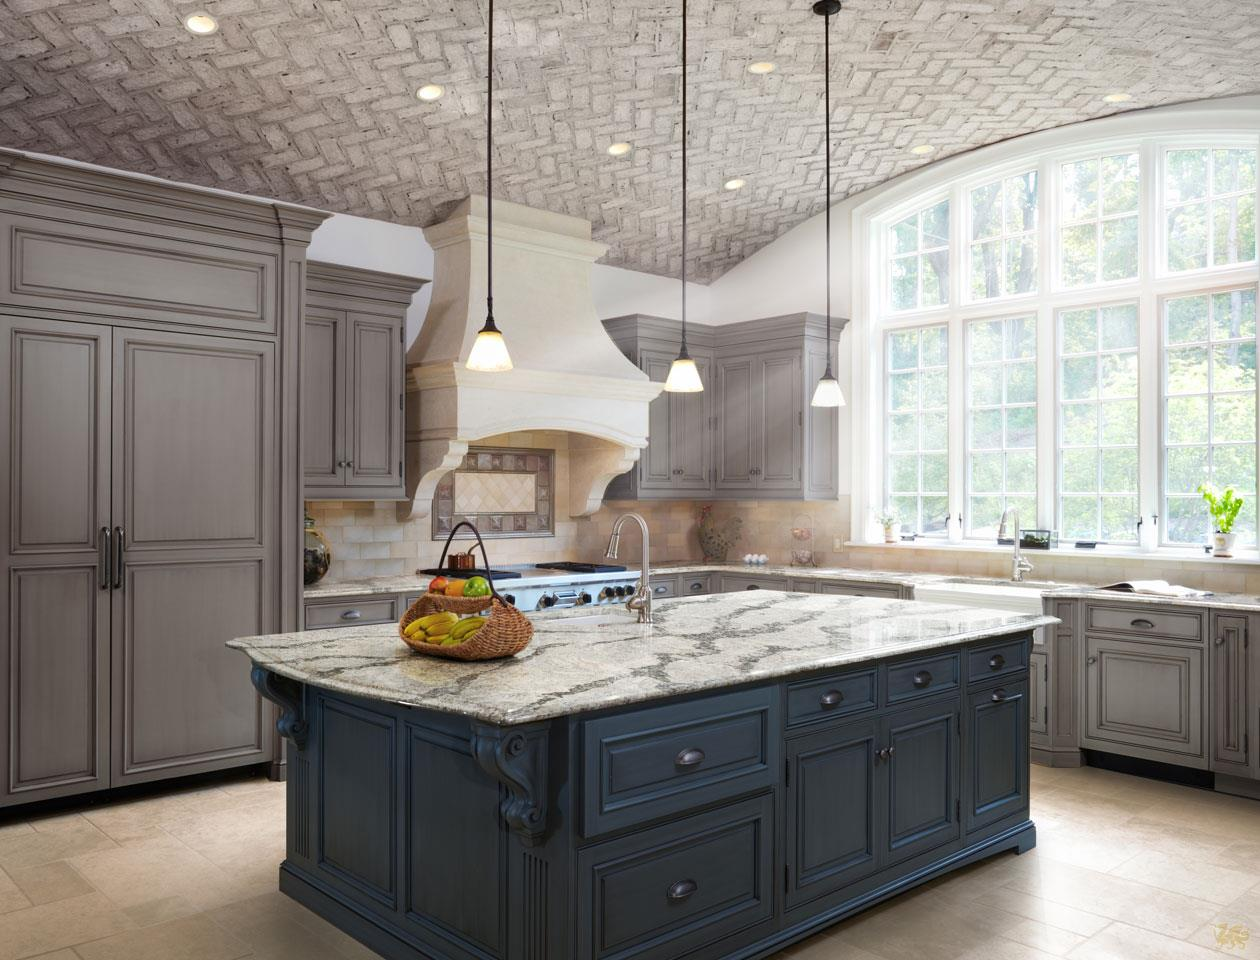 Open arched kitchen